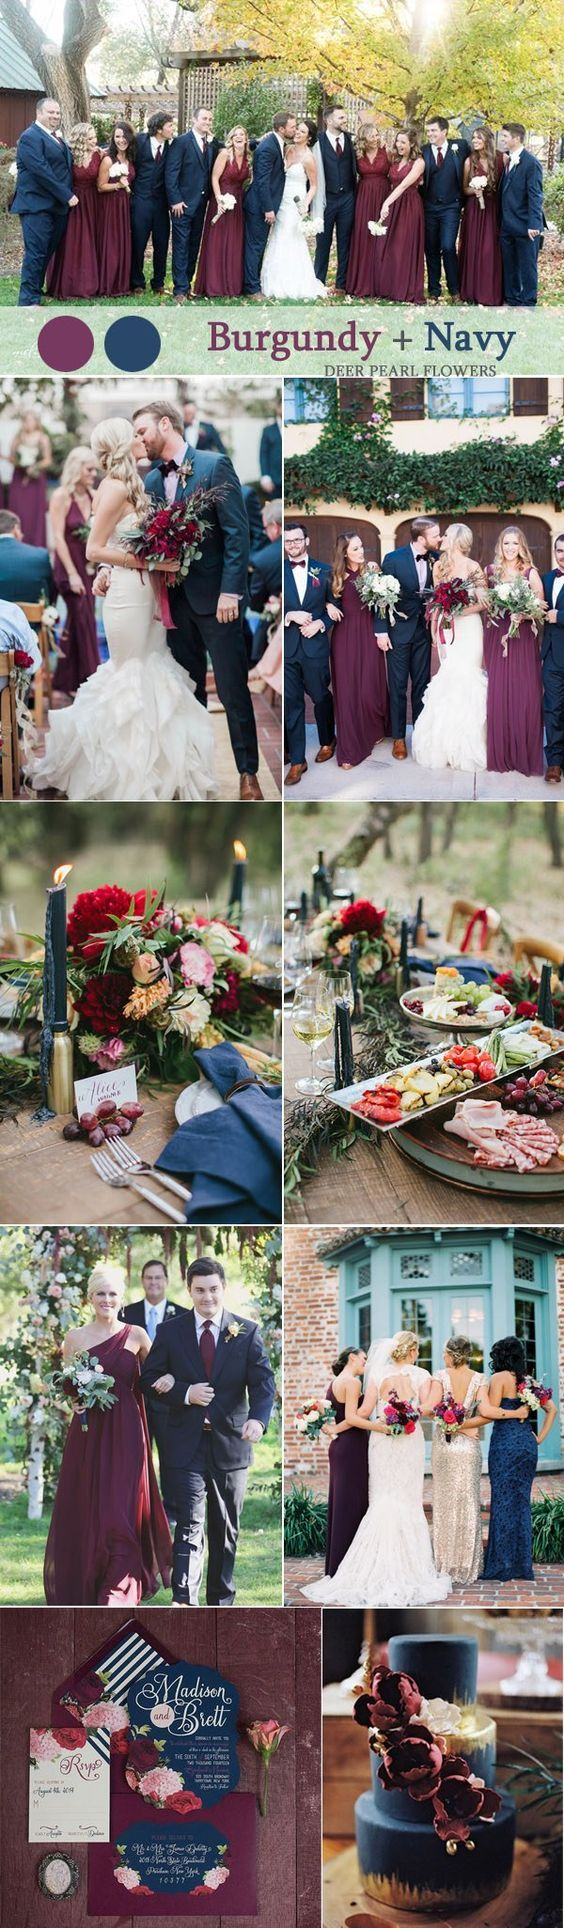 Burgundy and Navy Wedding Color Ideas  Navy wedding colors Navy